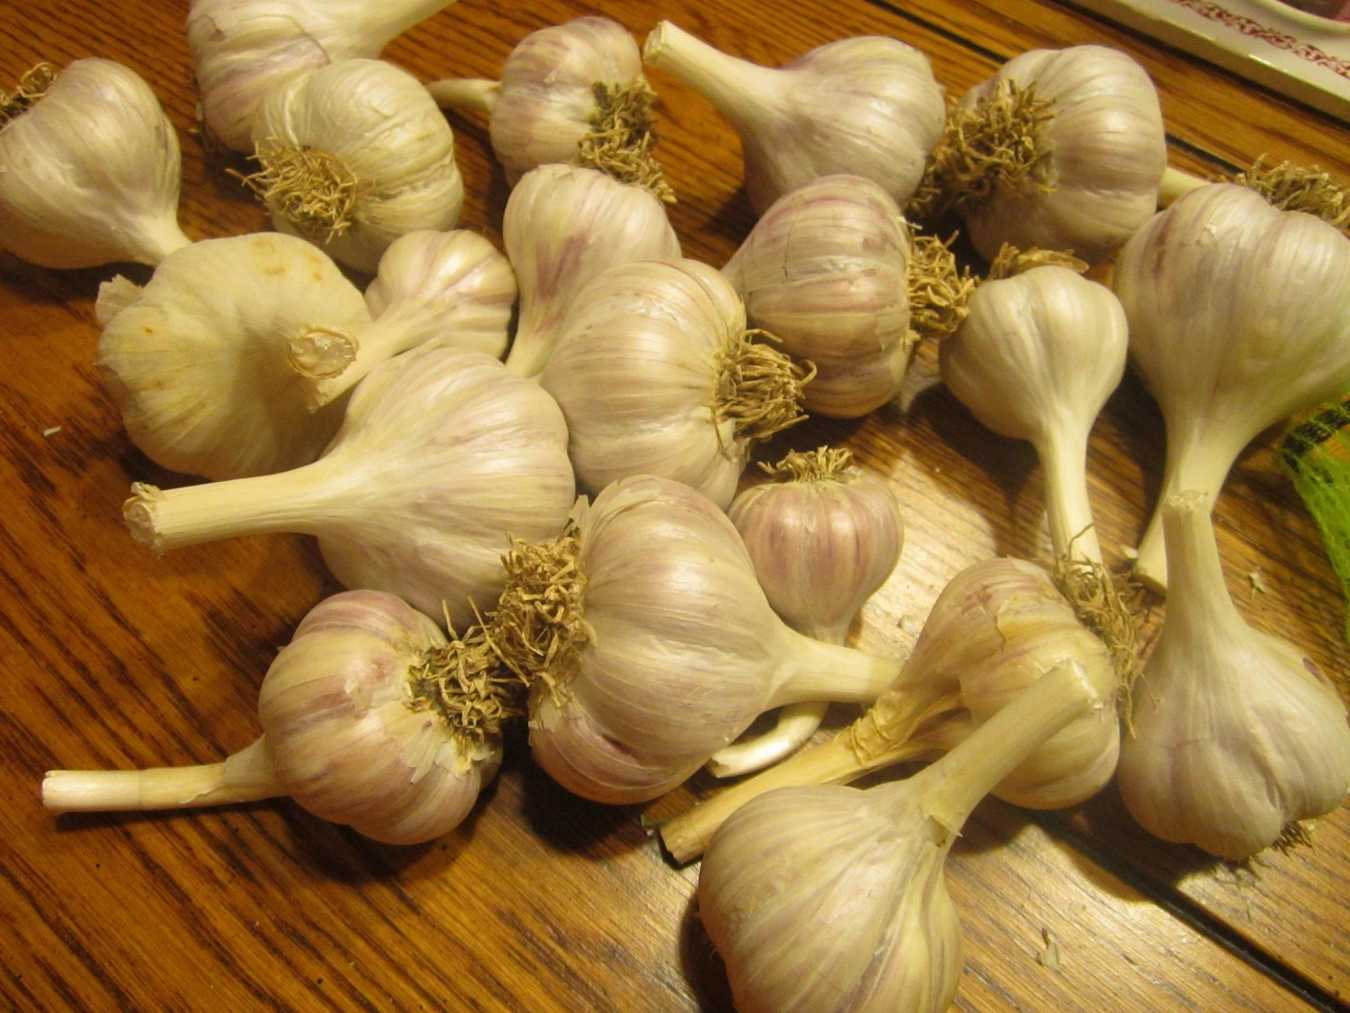 How Garlic Taught Me about Death and Resurrection